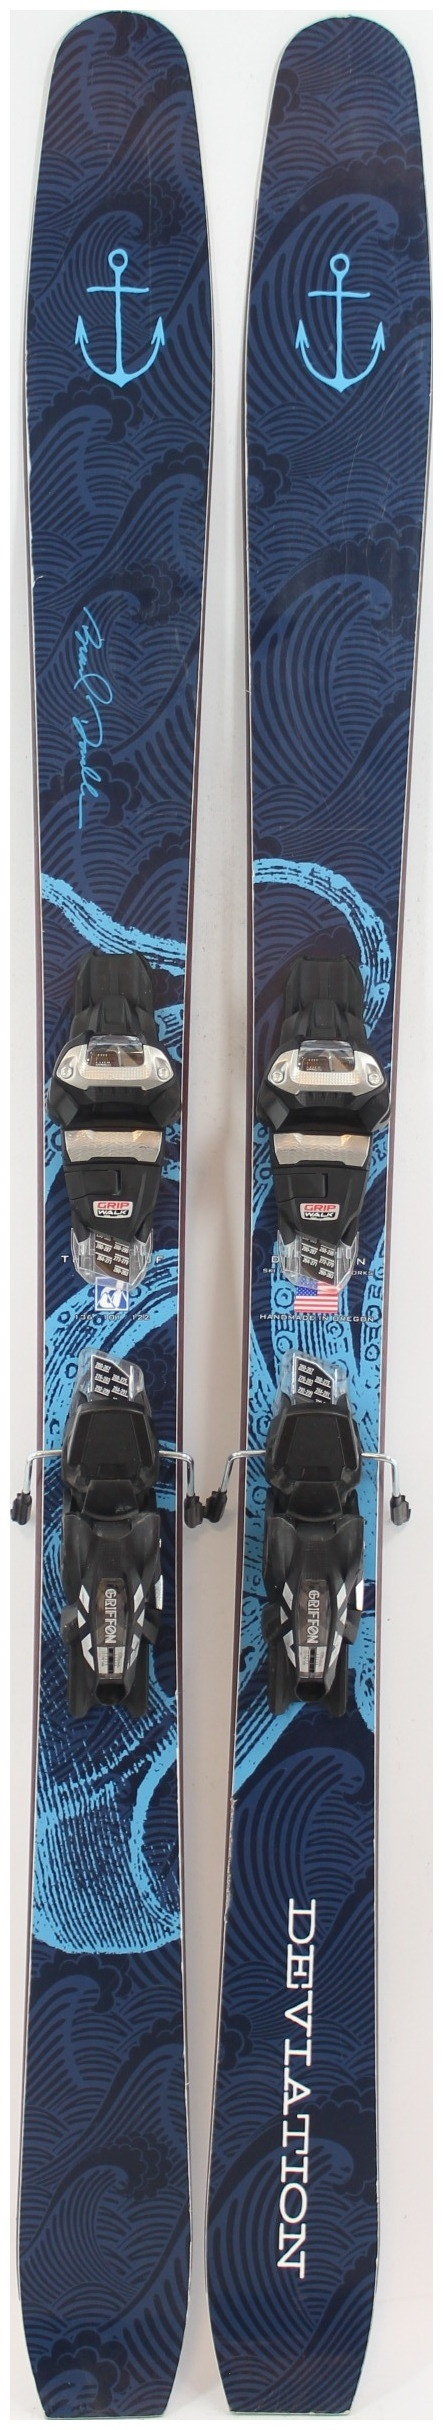 2019 Deviation The Proof Skis With Marker Griffon Demo Bindings Used Demo Skis 168cm